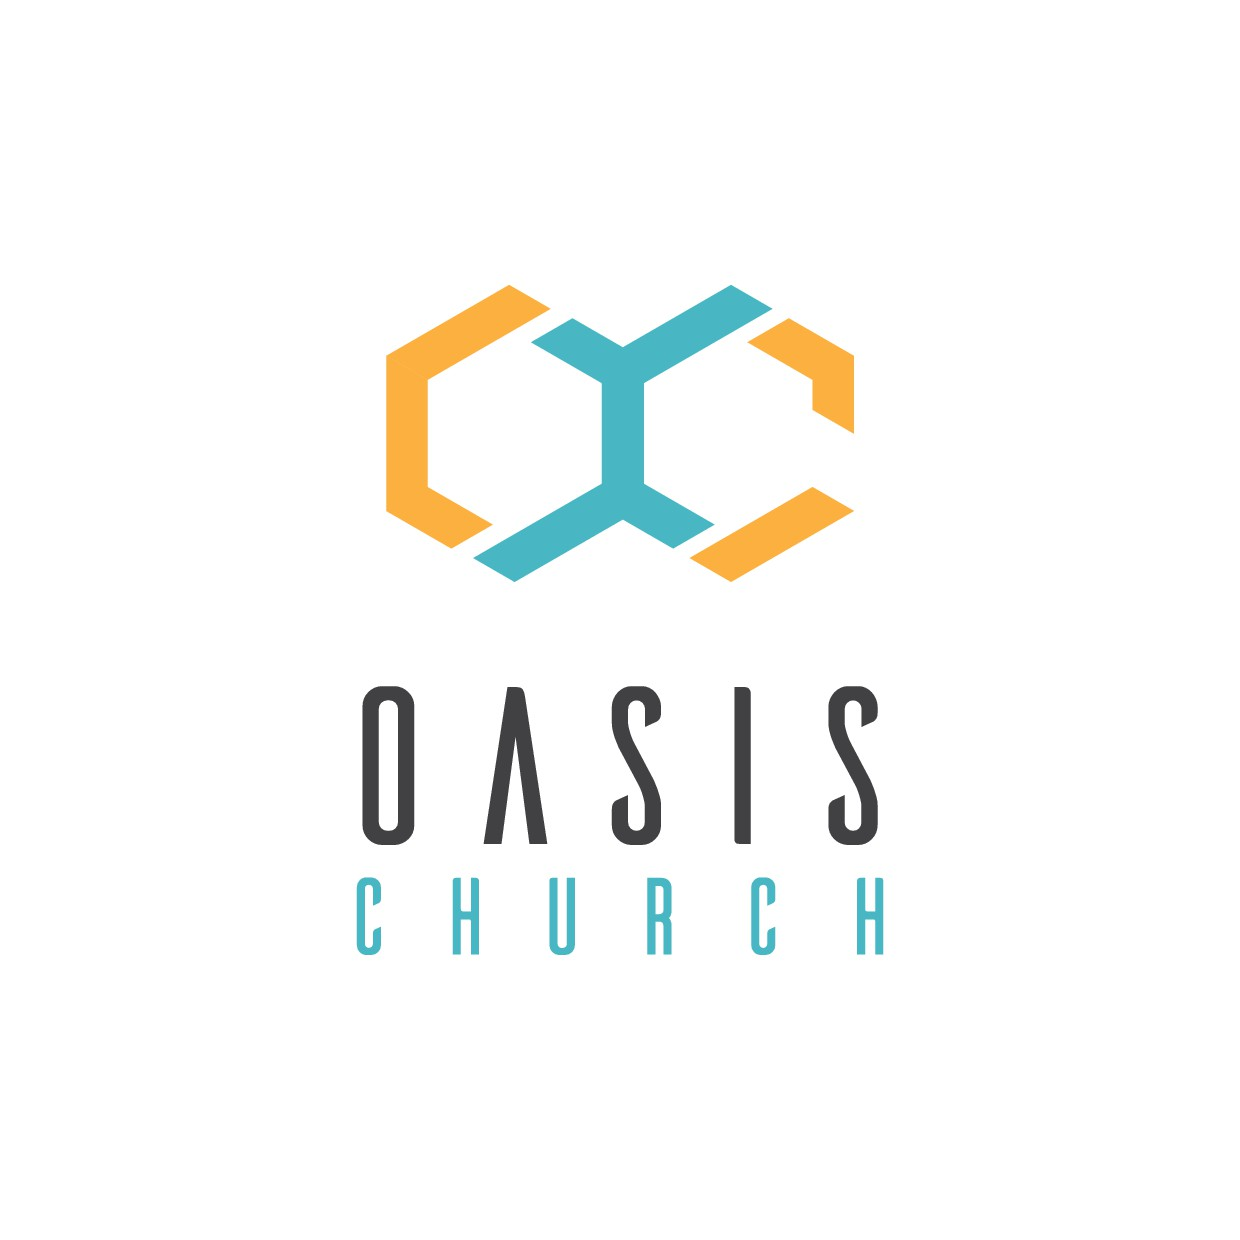 Church needs powerful new modern logo.